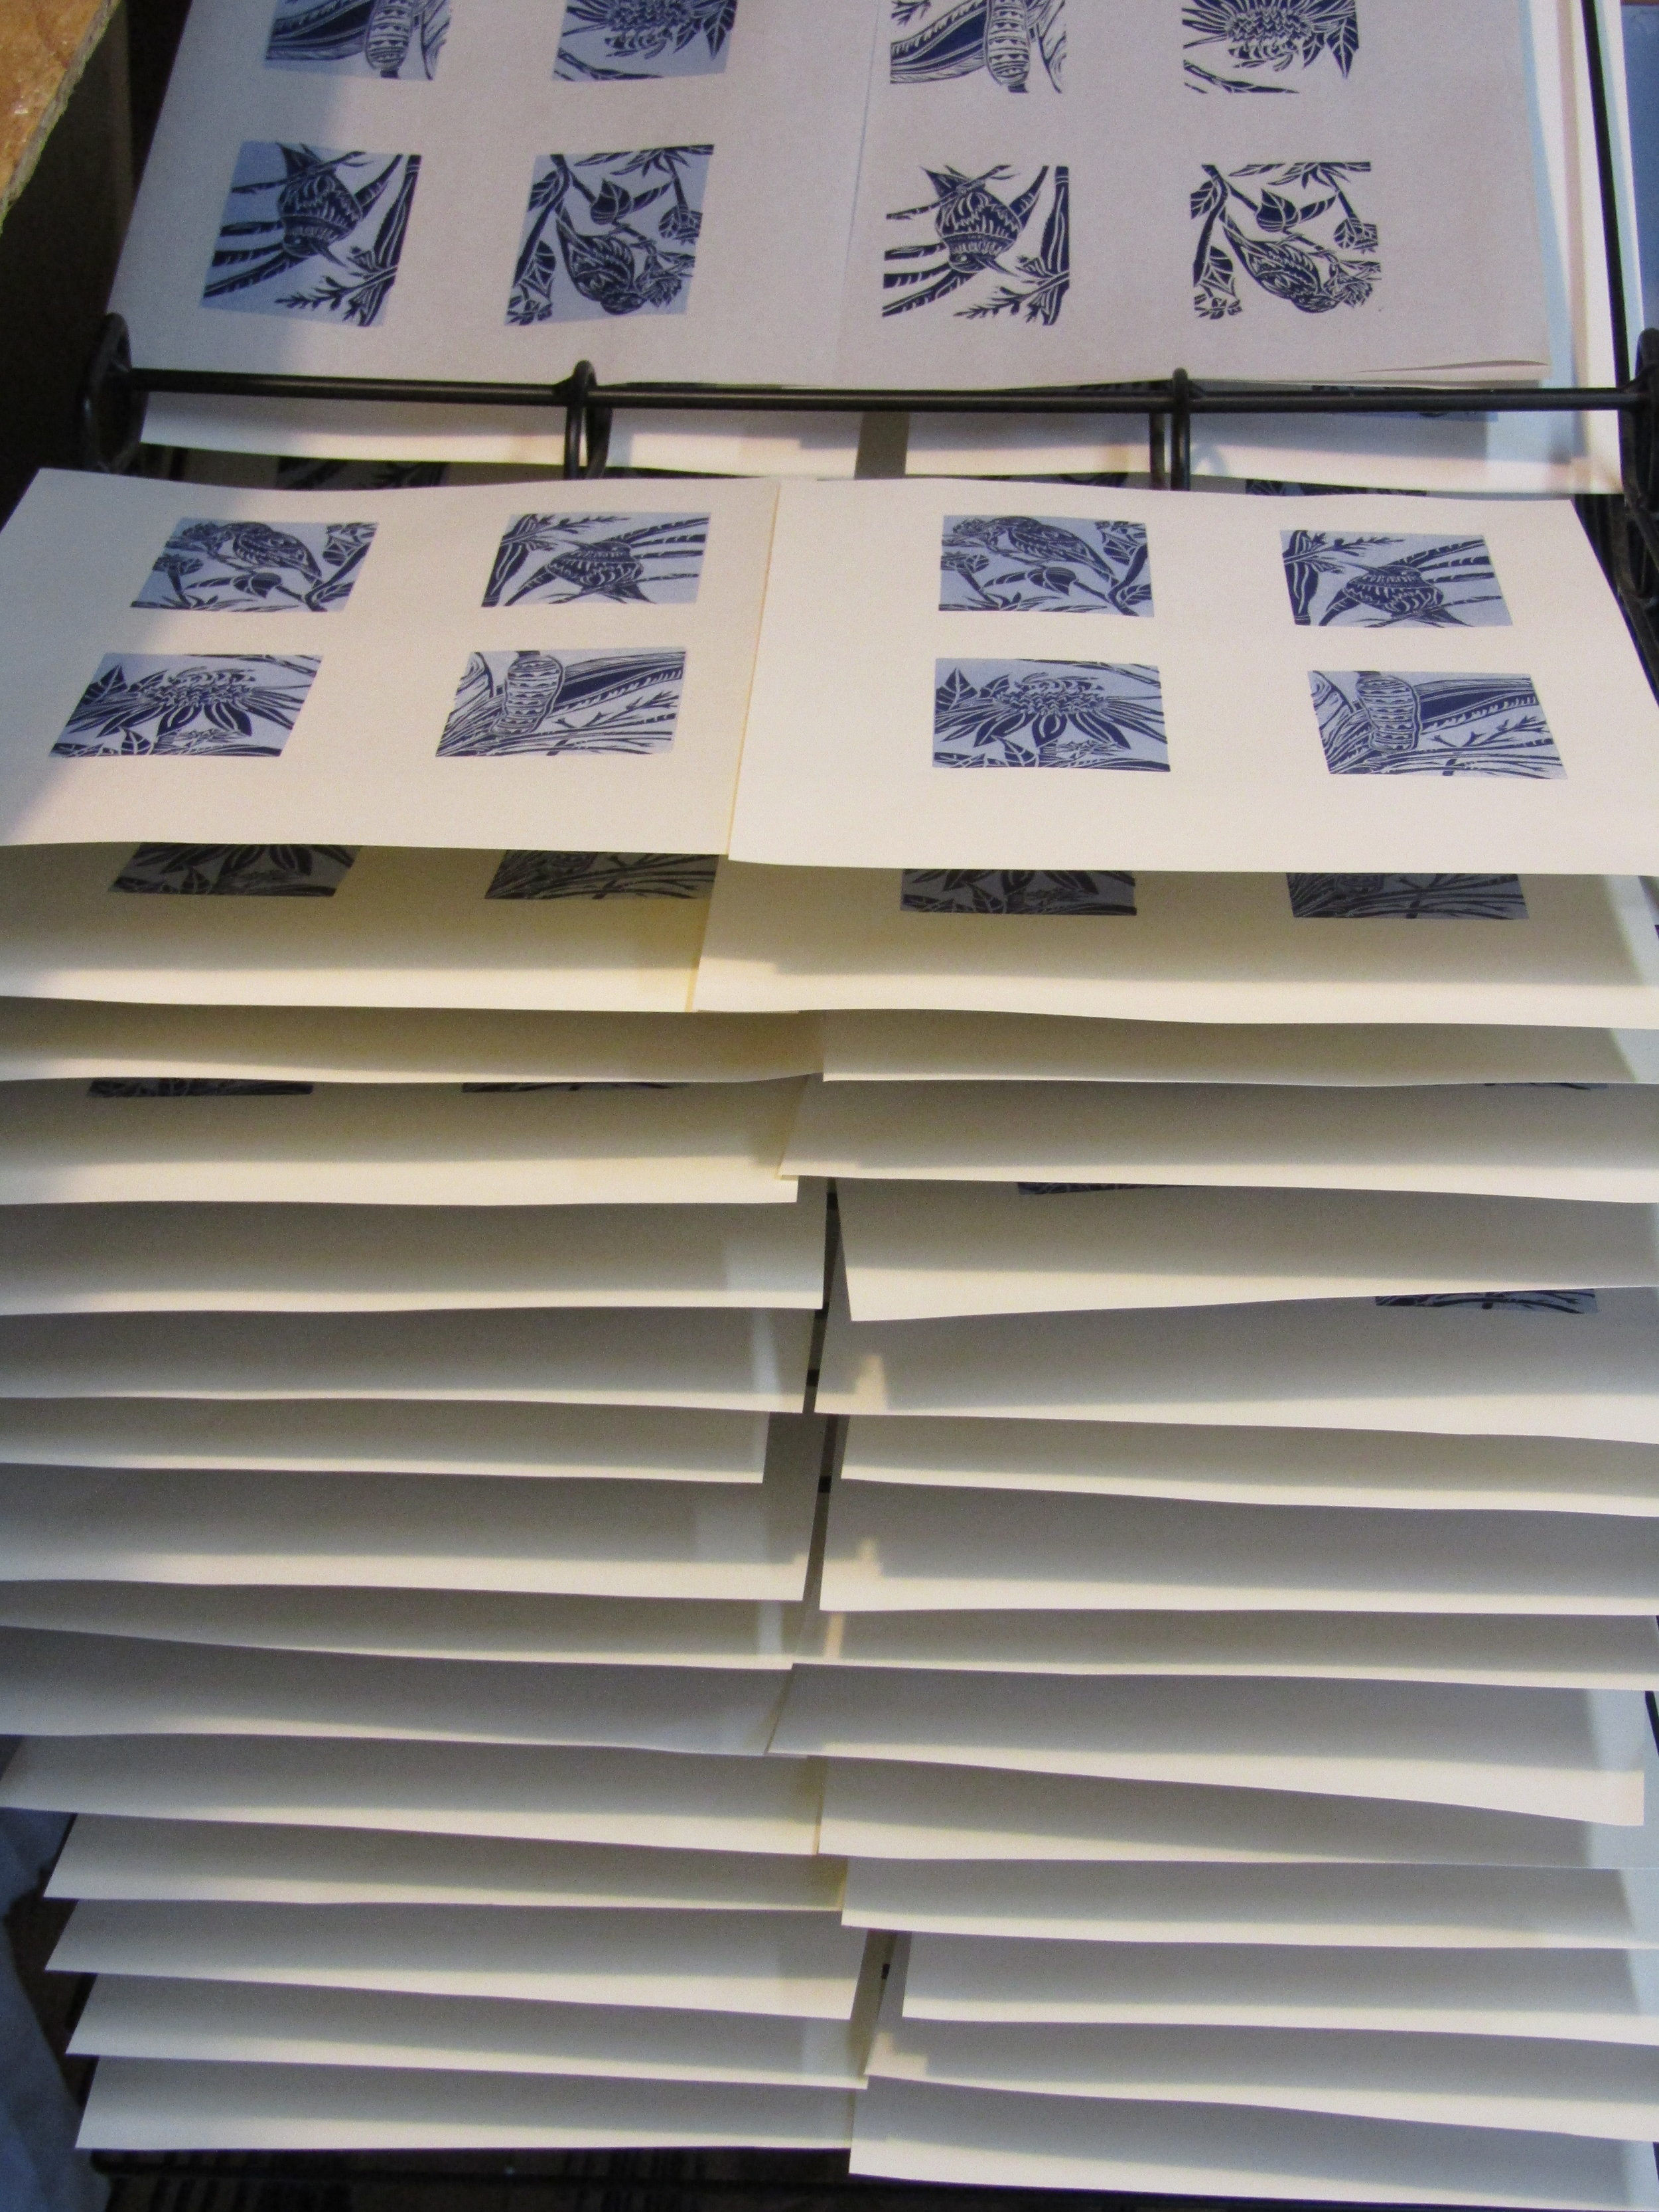 I printed numerous prints, since I would need at least five prints of each image for each tunnel book.